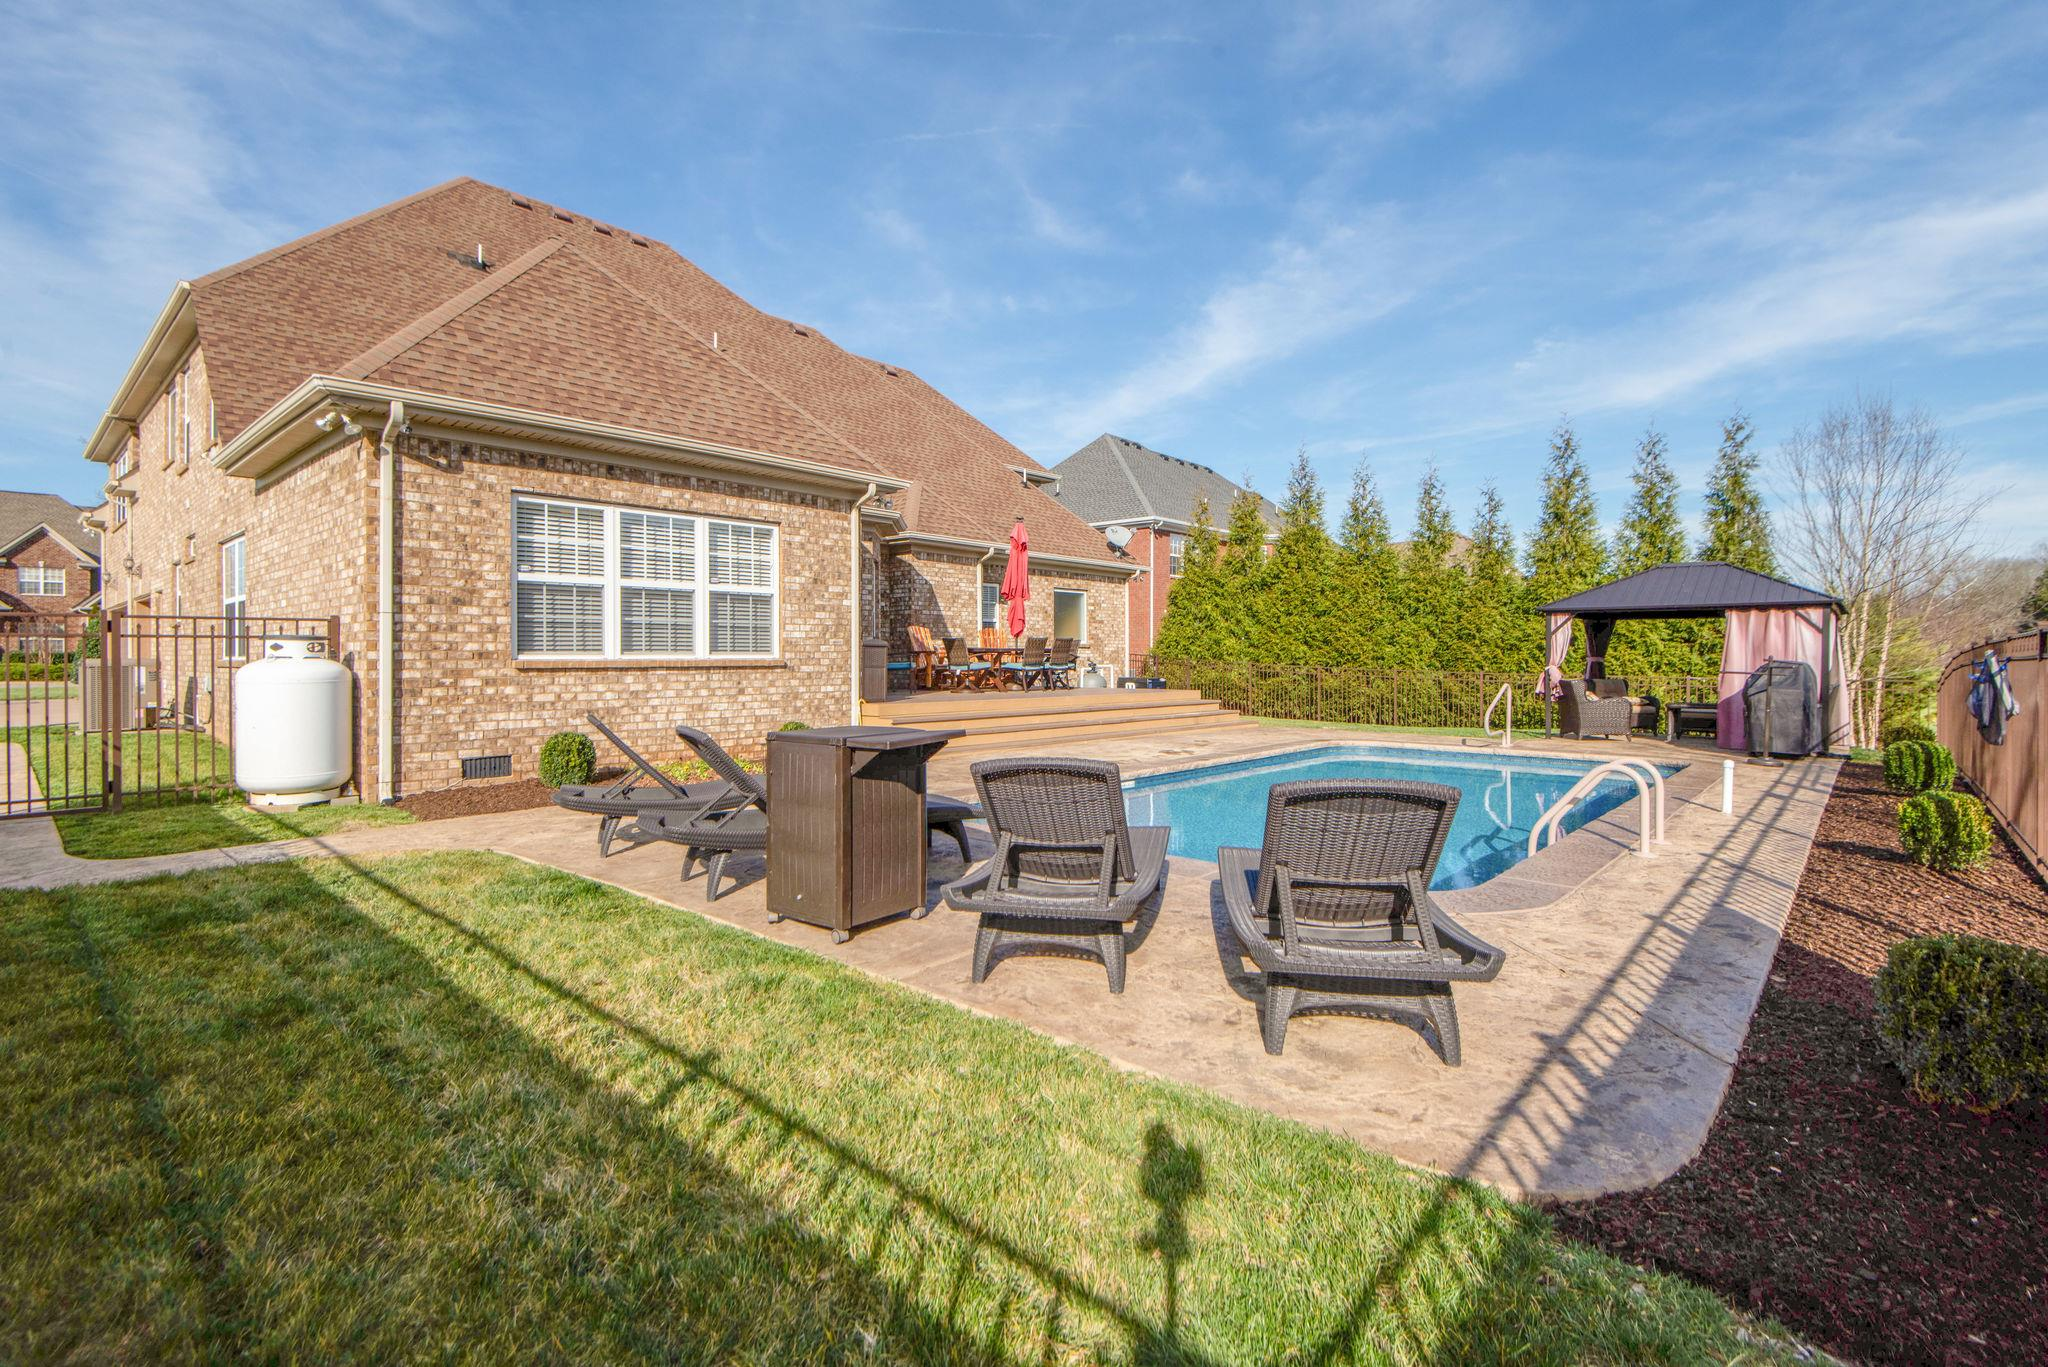 102 Mandarin Ct, Smyrna, TN 37167 - Smyrna, TN real estate listing